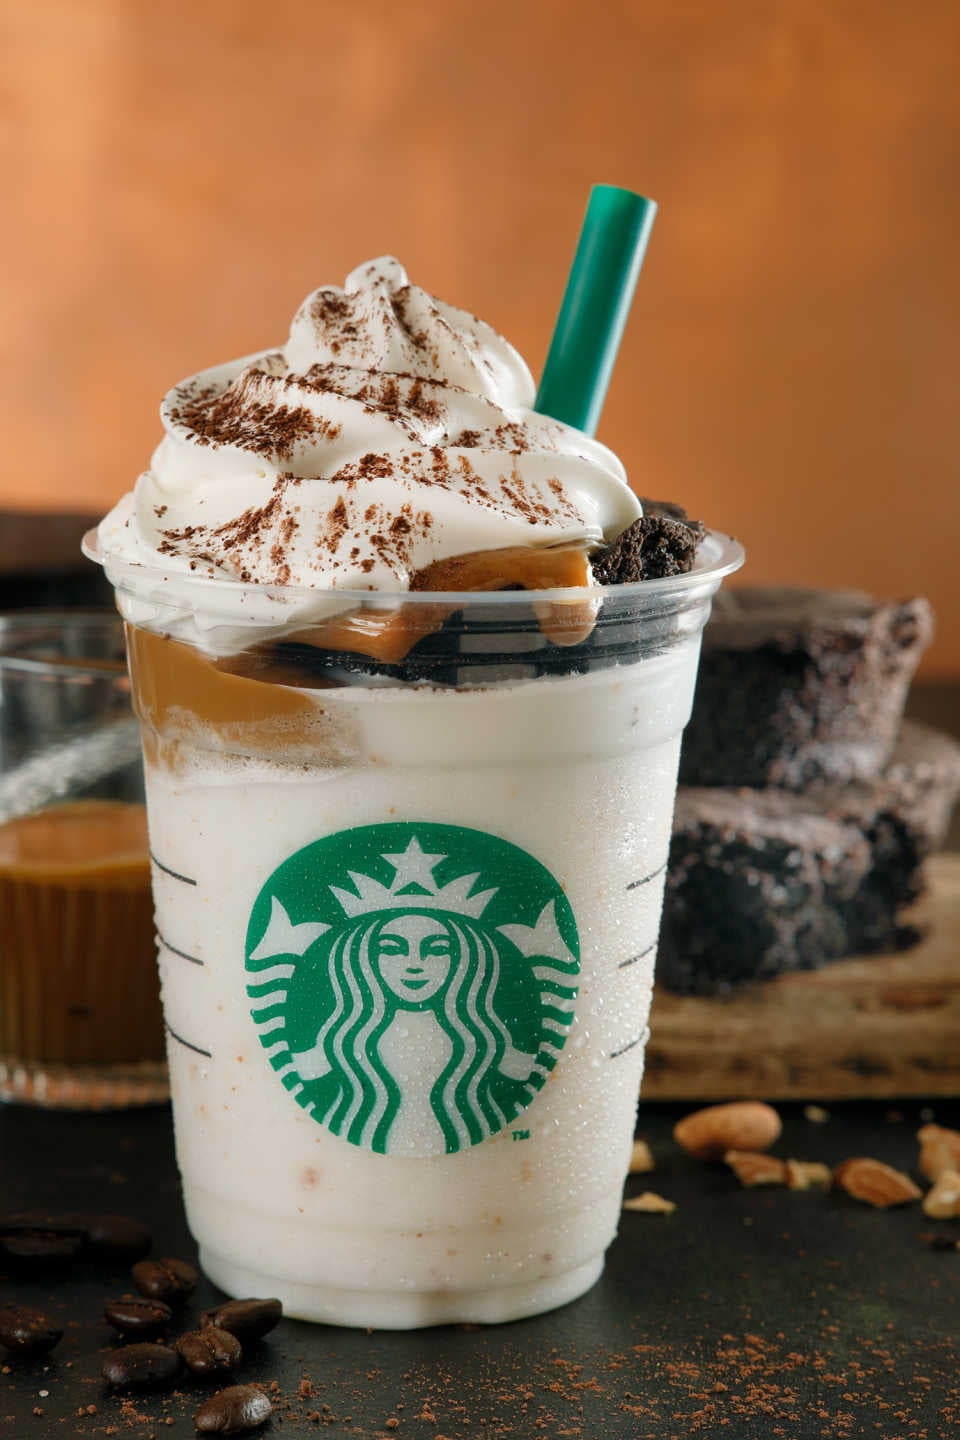 Starbucks Chocolate Cake Topped Frappuccinos In Japan